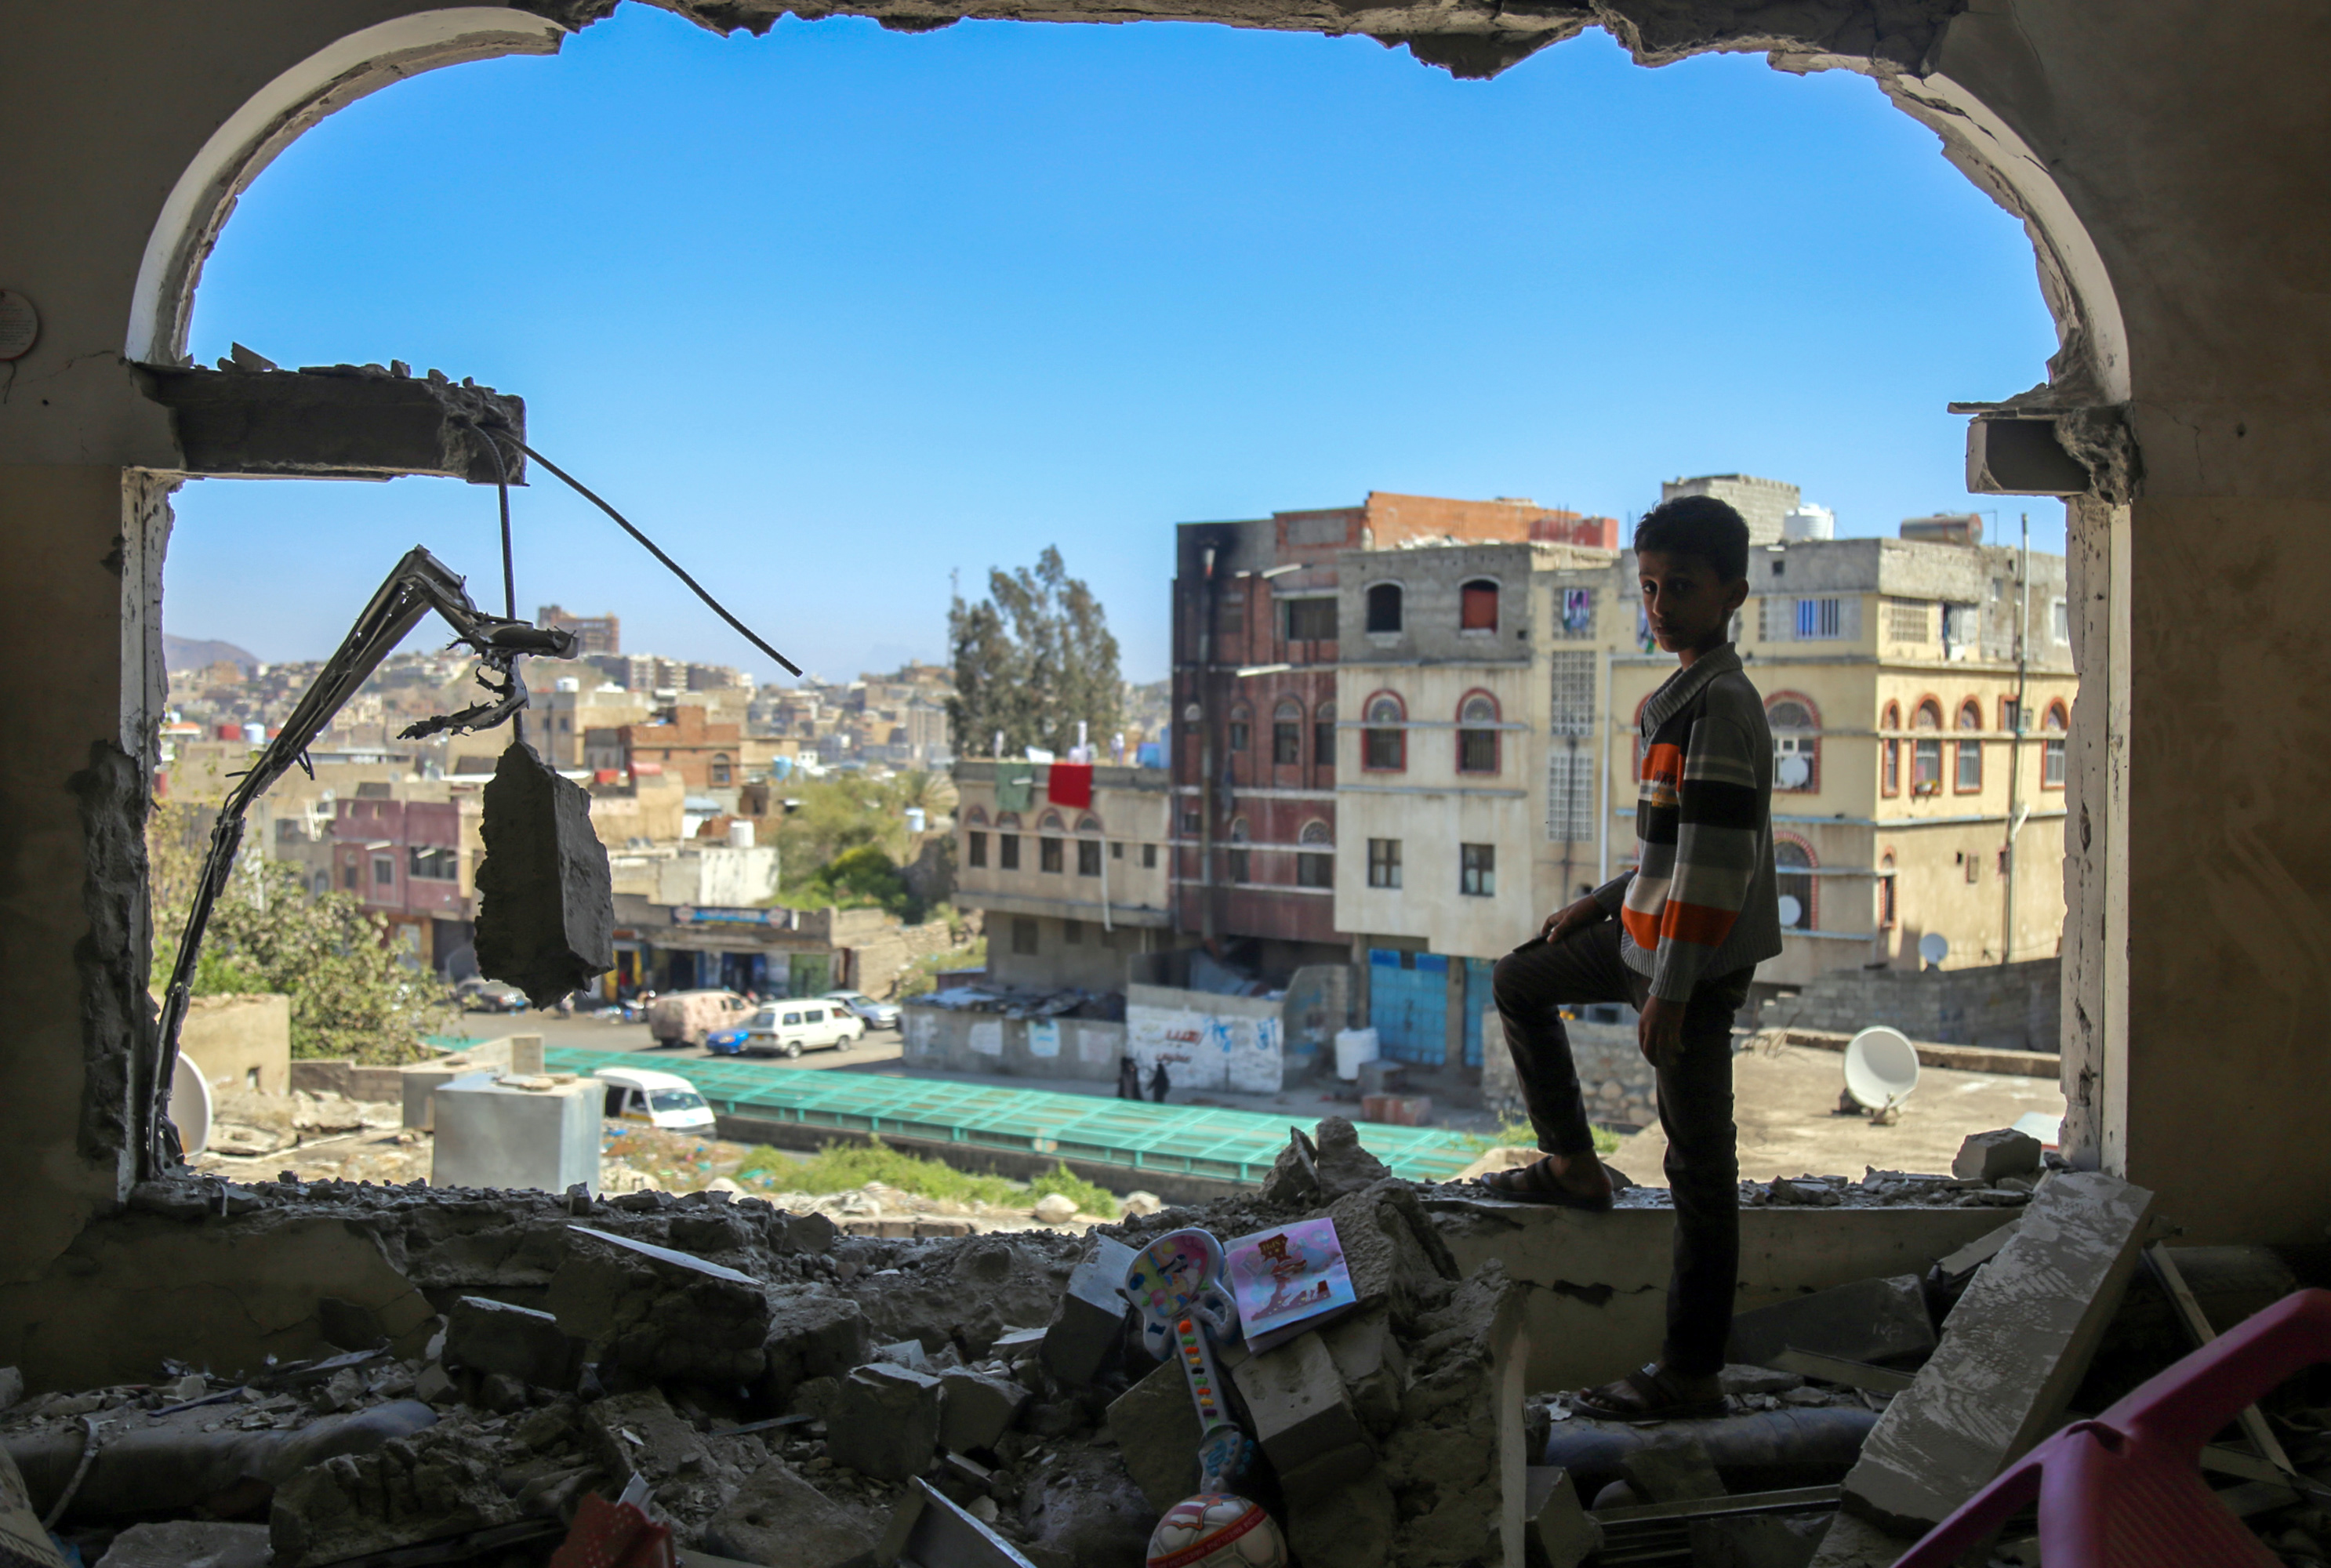 In Yemen, a Humanitarian Pause Is Urgently Needed